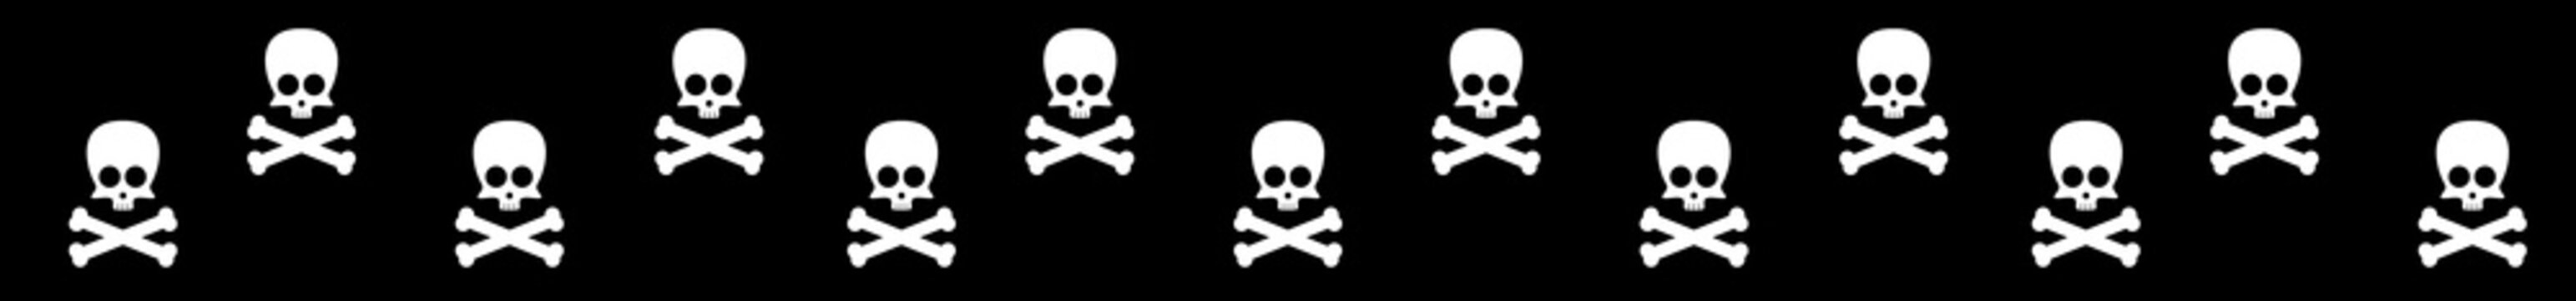 Long web seamless banner with cute skull and crossbones silhouettes on black background. Vector illustration.